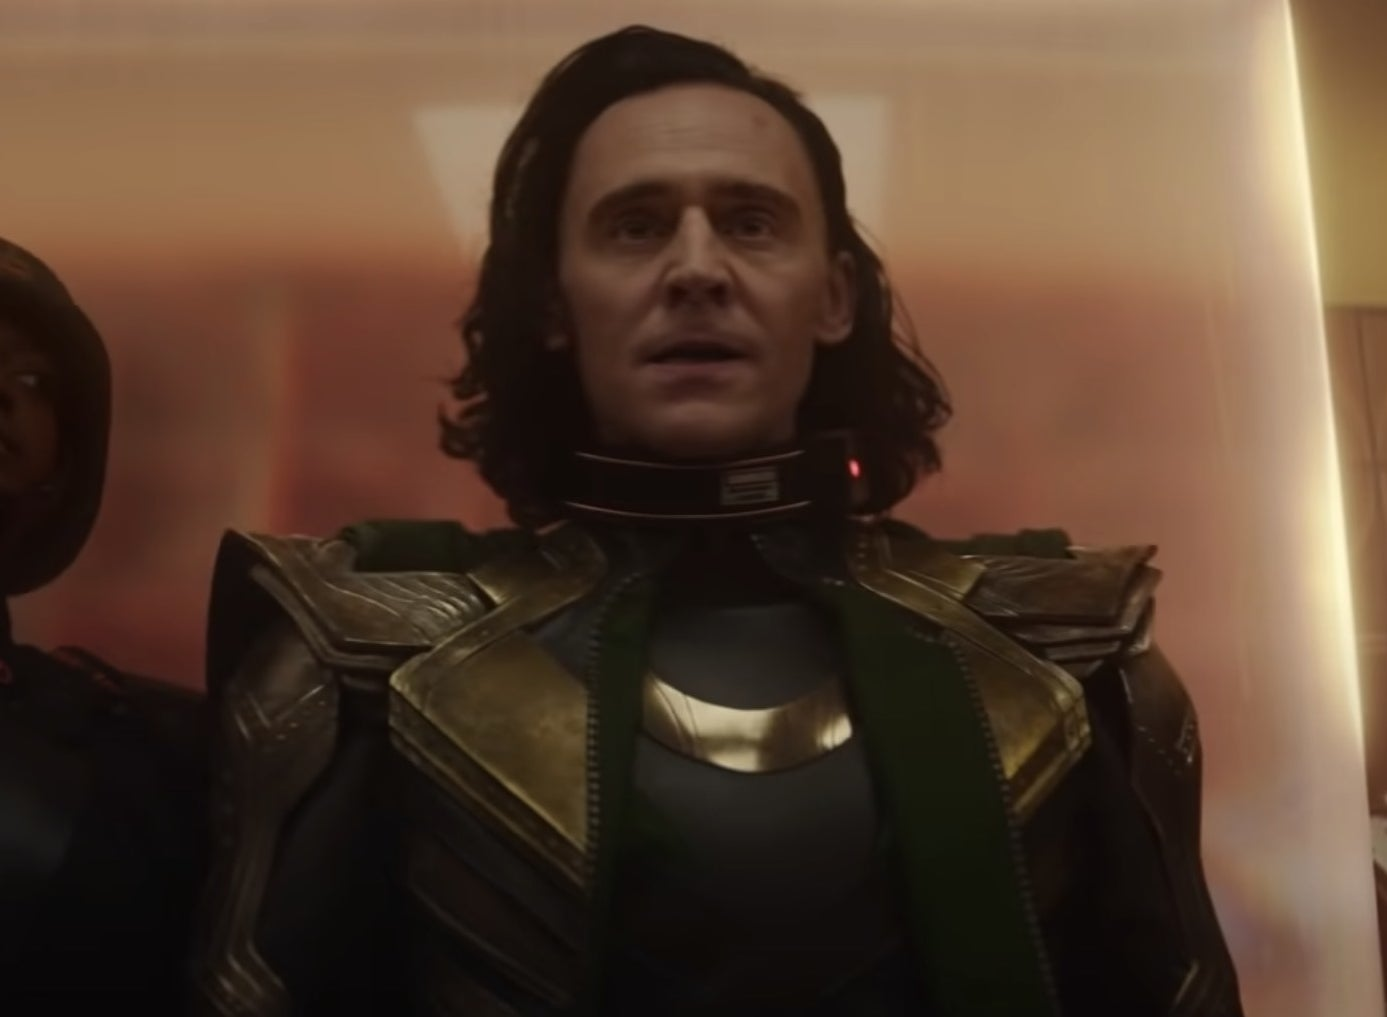 A screenshot of Loki being escorted into a building by a guard